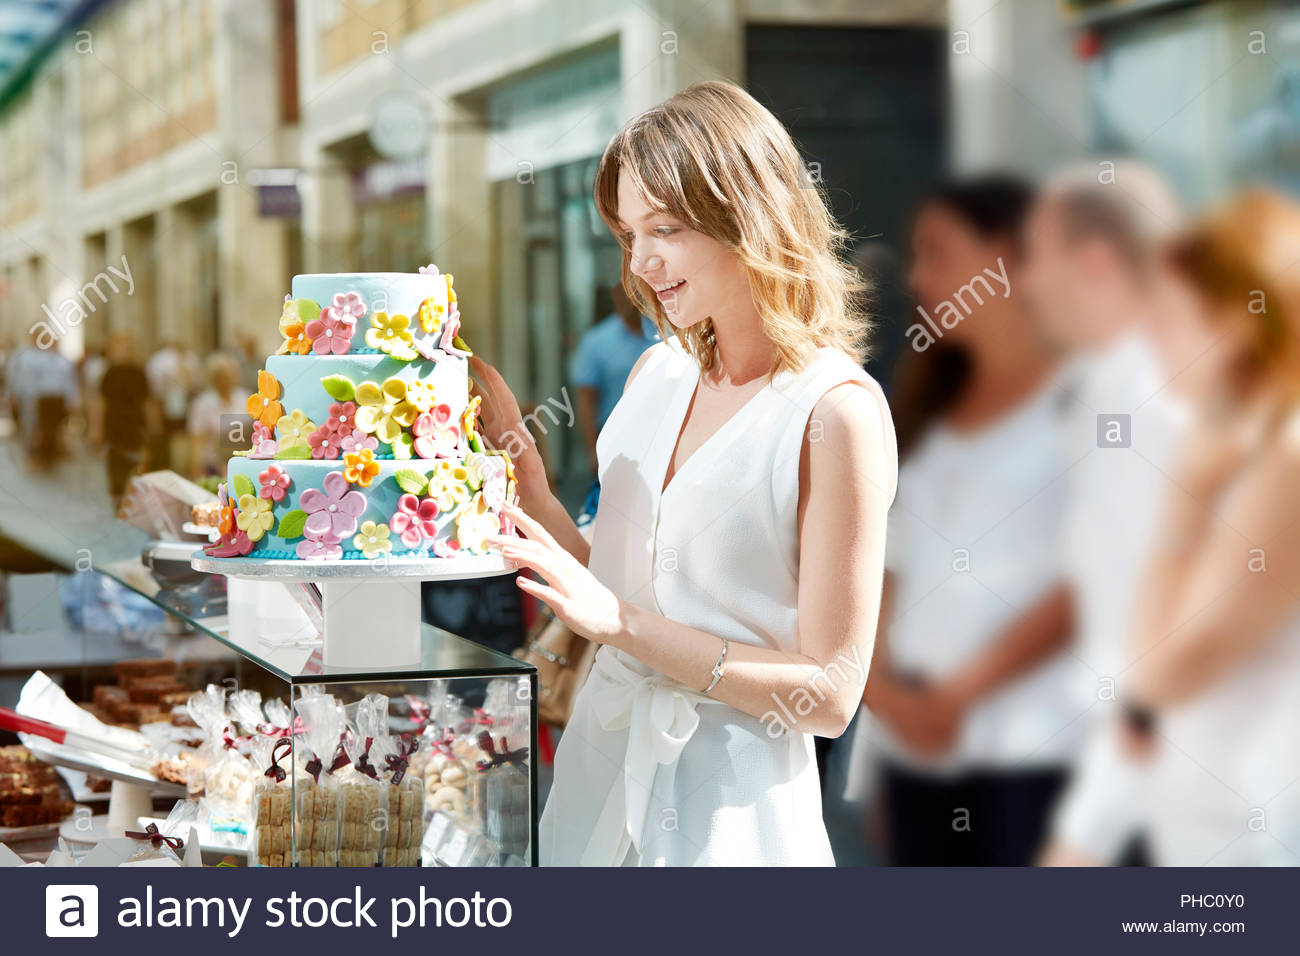 Young woman looking at decorated cake. - Stock Image